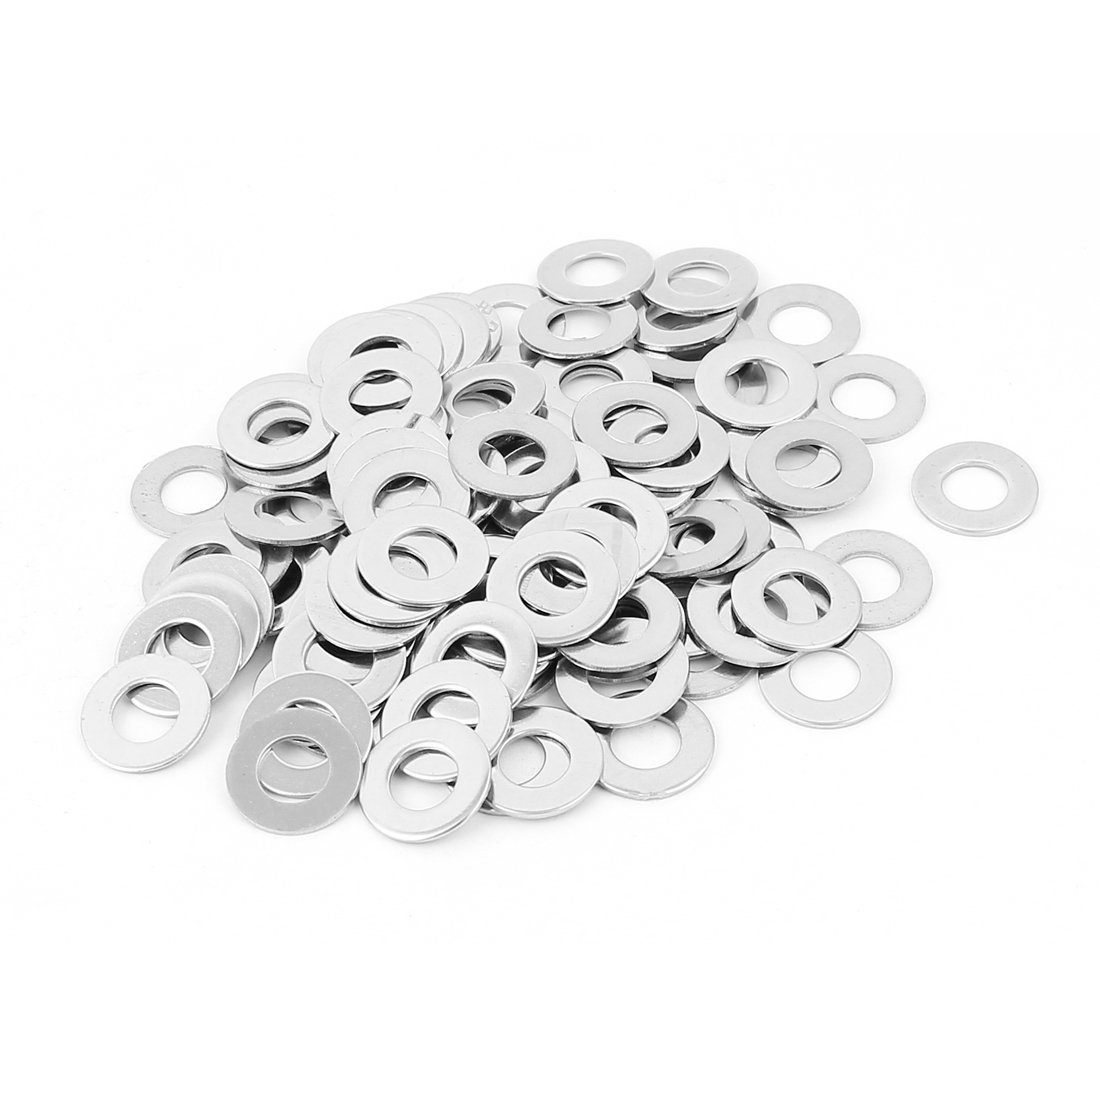 uxcell 100pcs M8 304 Stainless Steel Plain Flat Washers for Bolt Screws